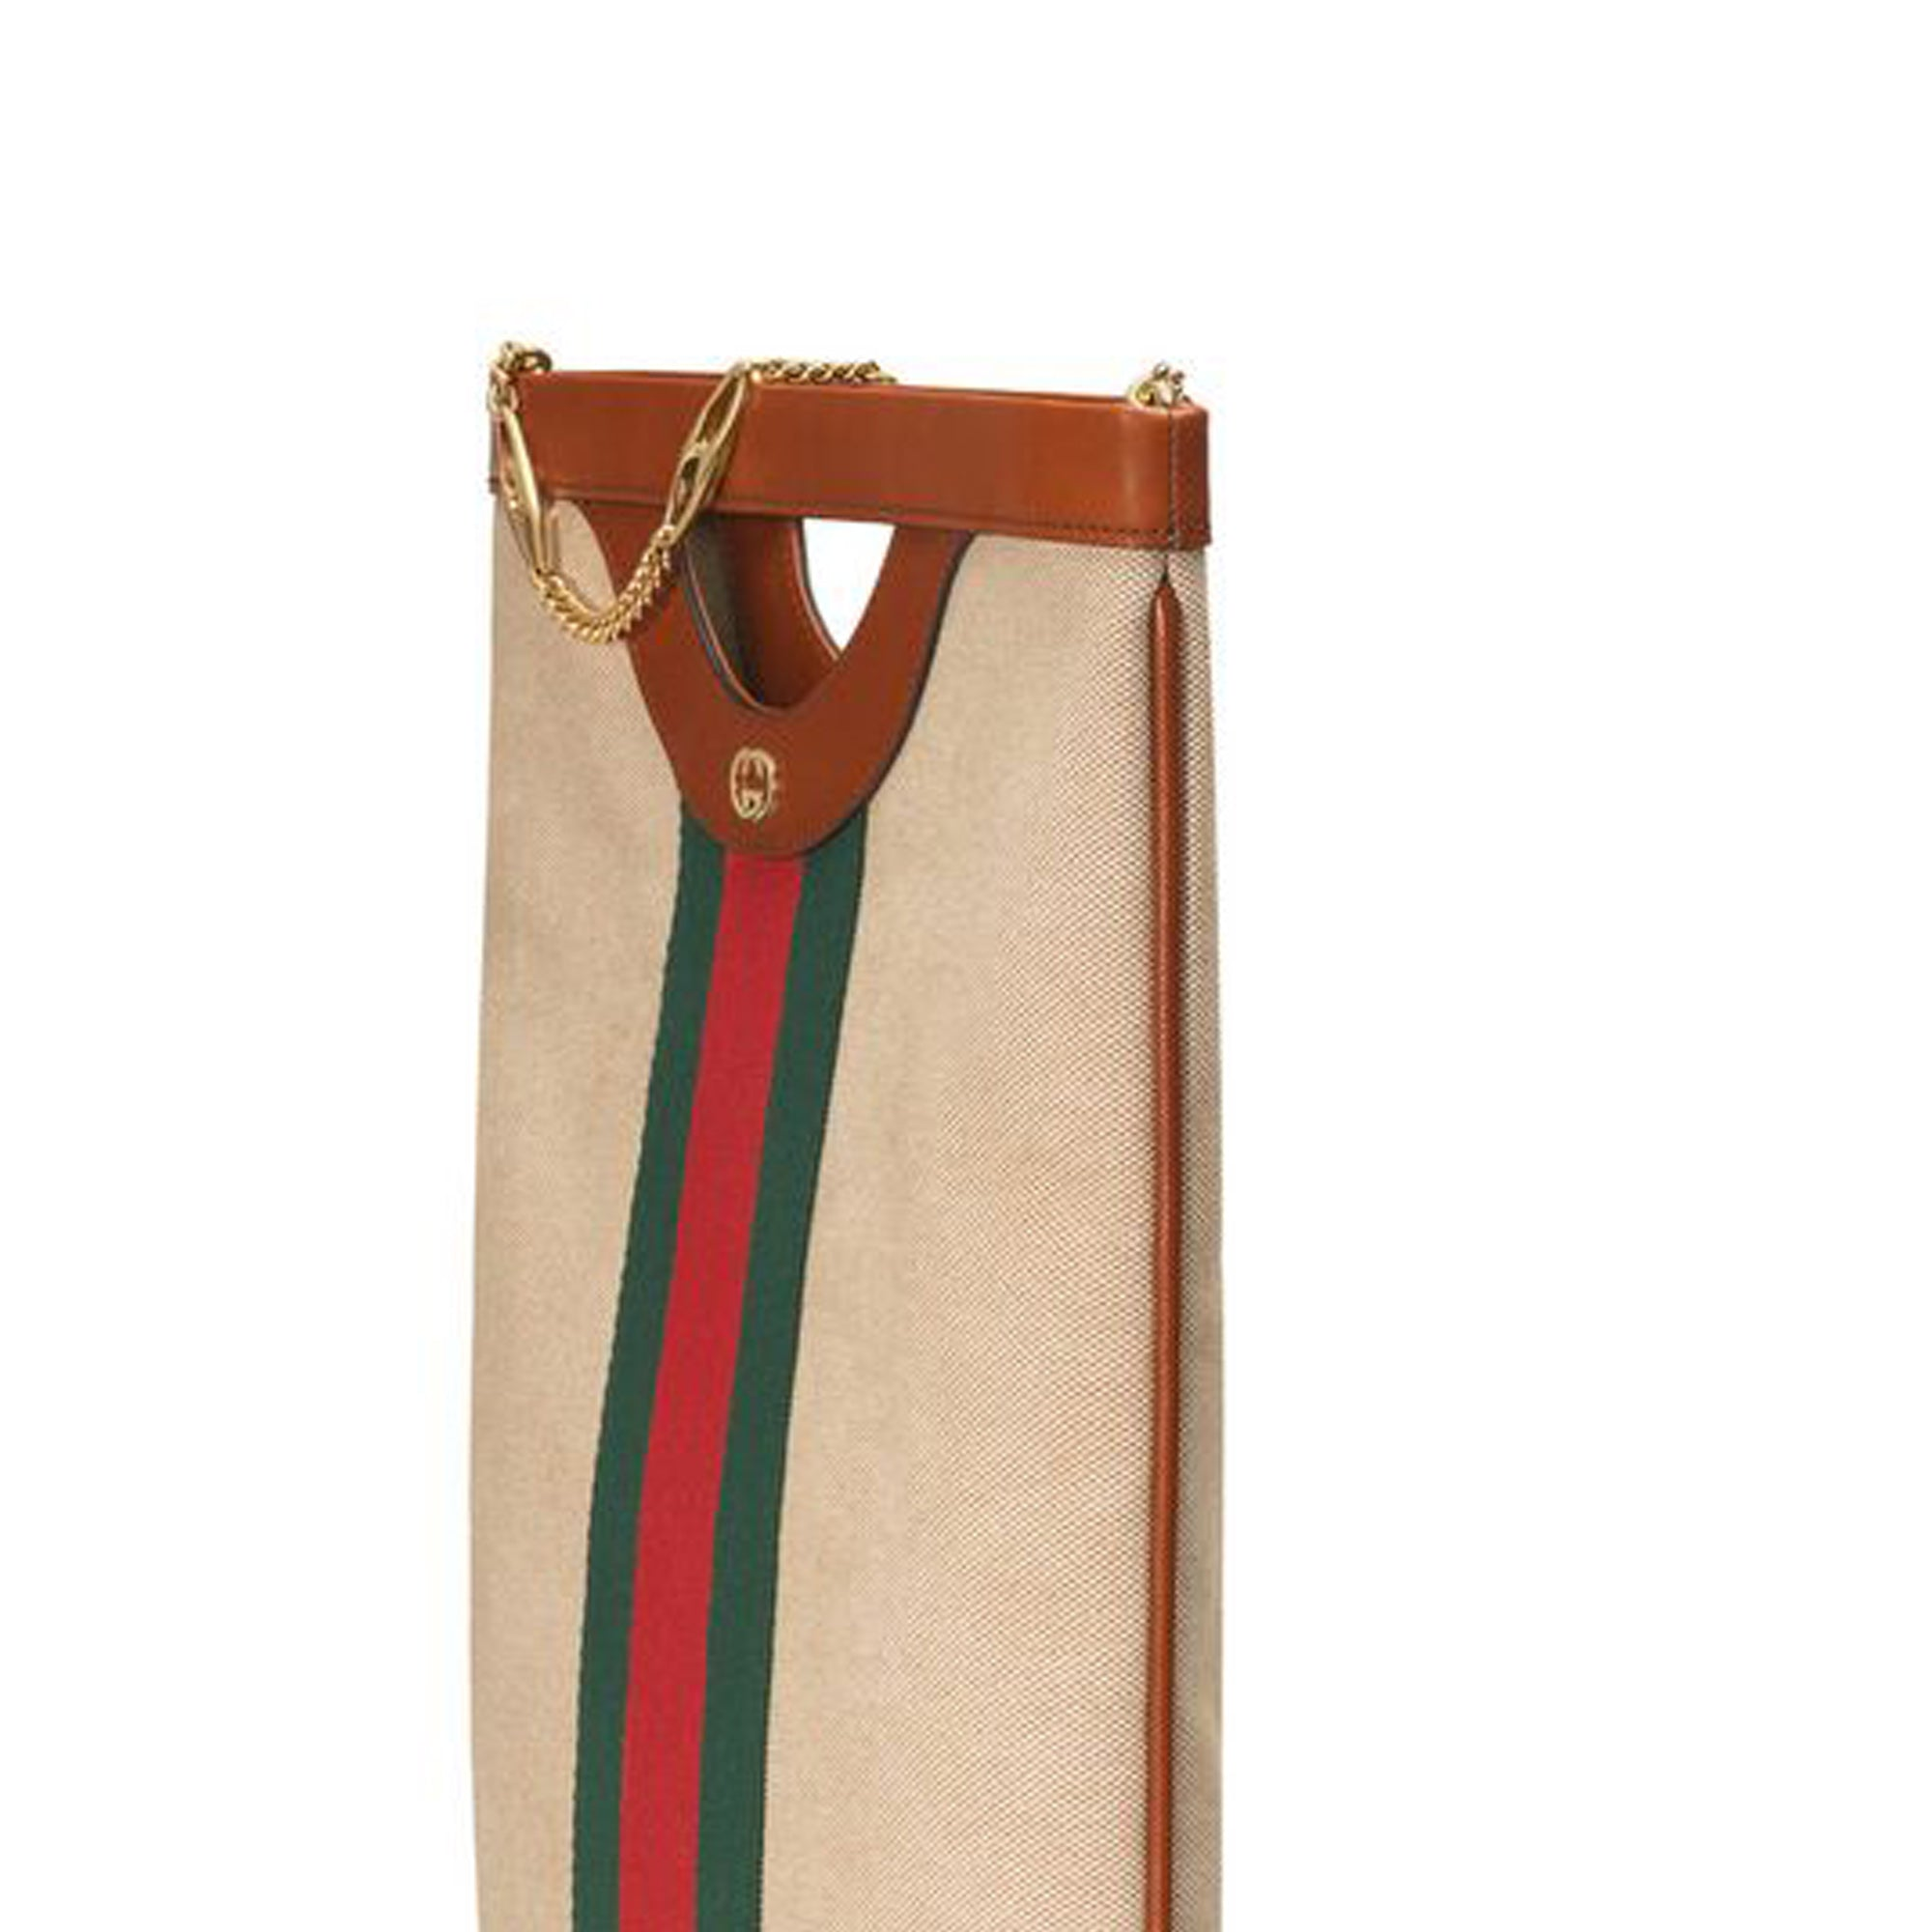 Gucci Brown Web Canvas Tote Bag